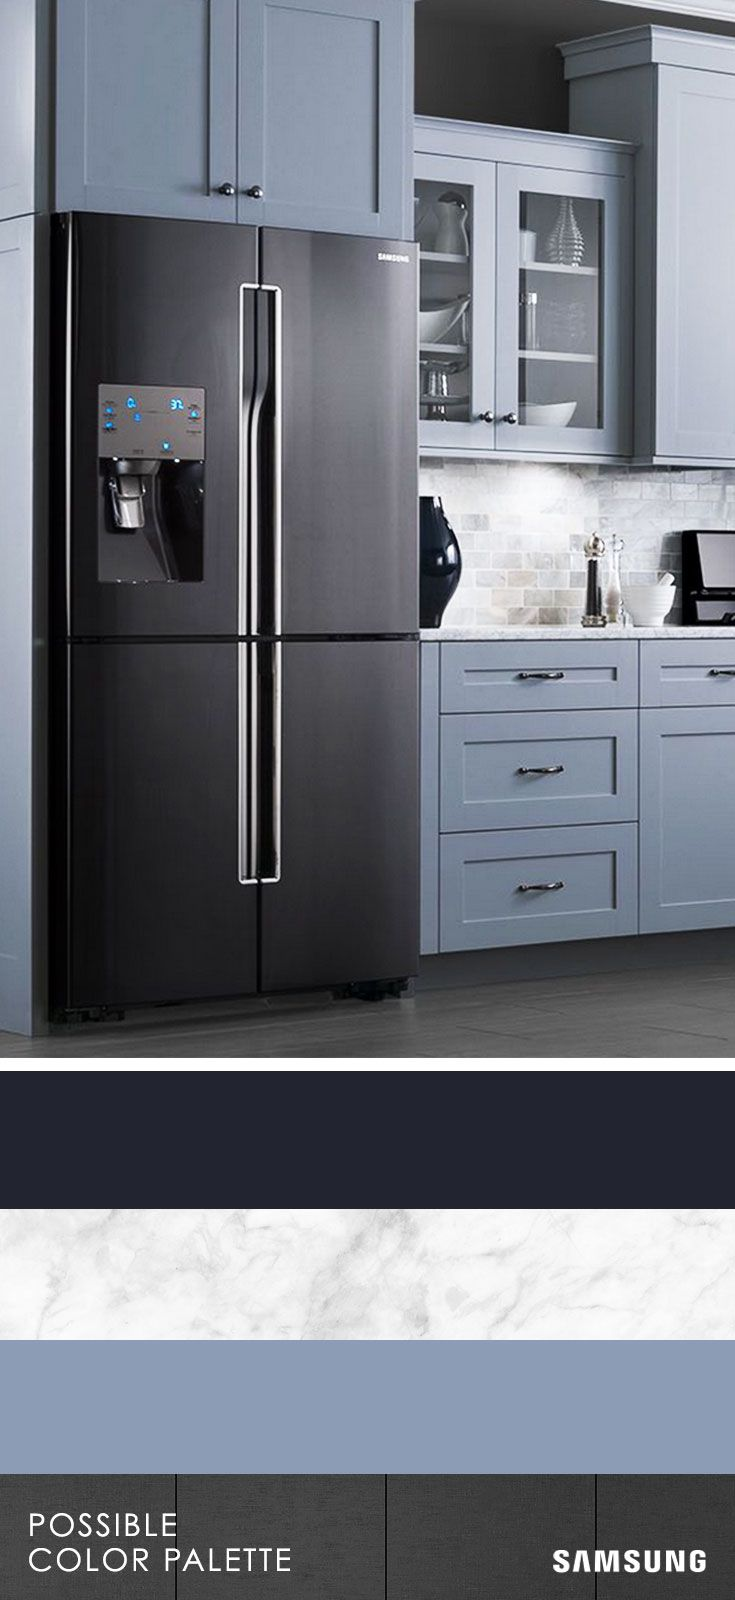 Kitchen appliances different colors - Black Has Always Paired Effortlessly With Other Colors And It S No Different When It Comes